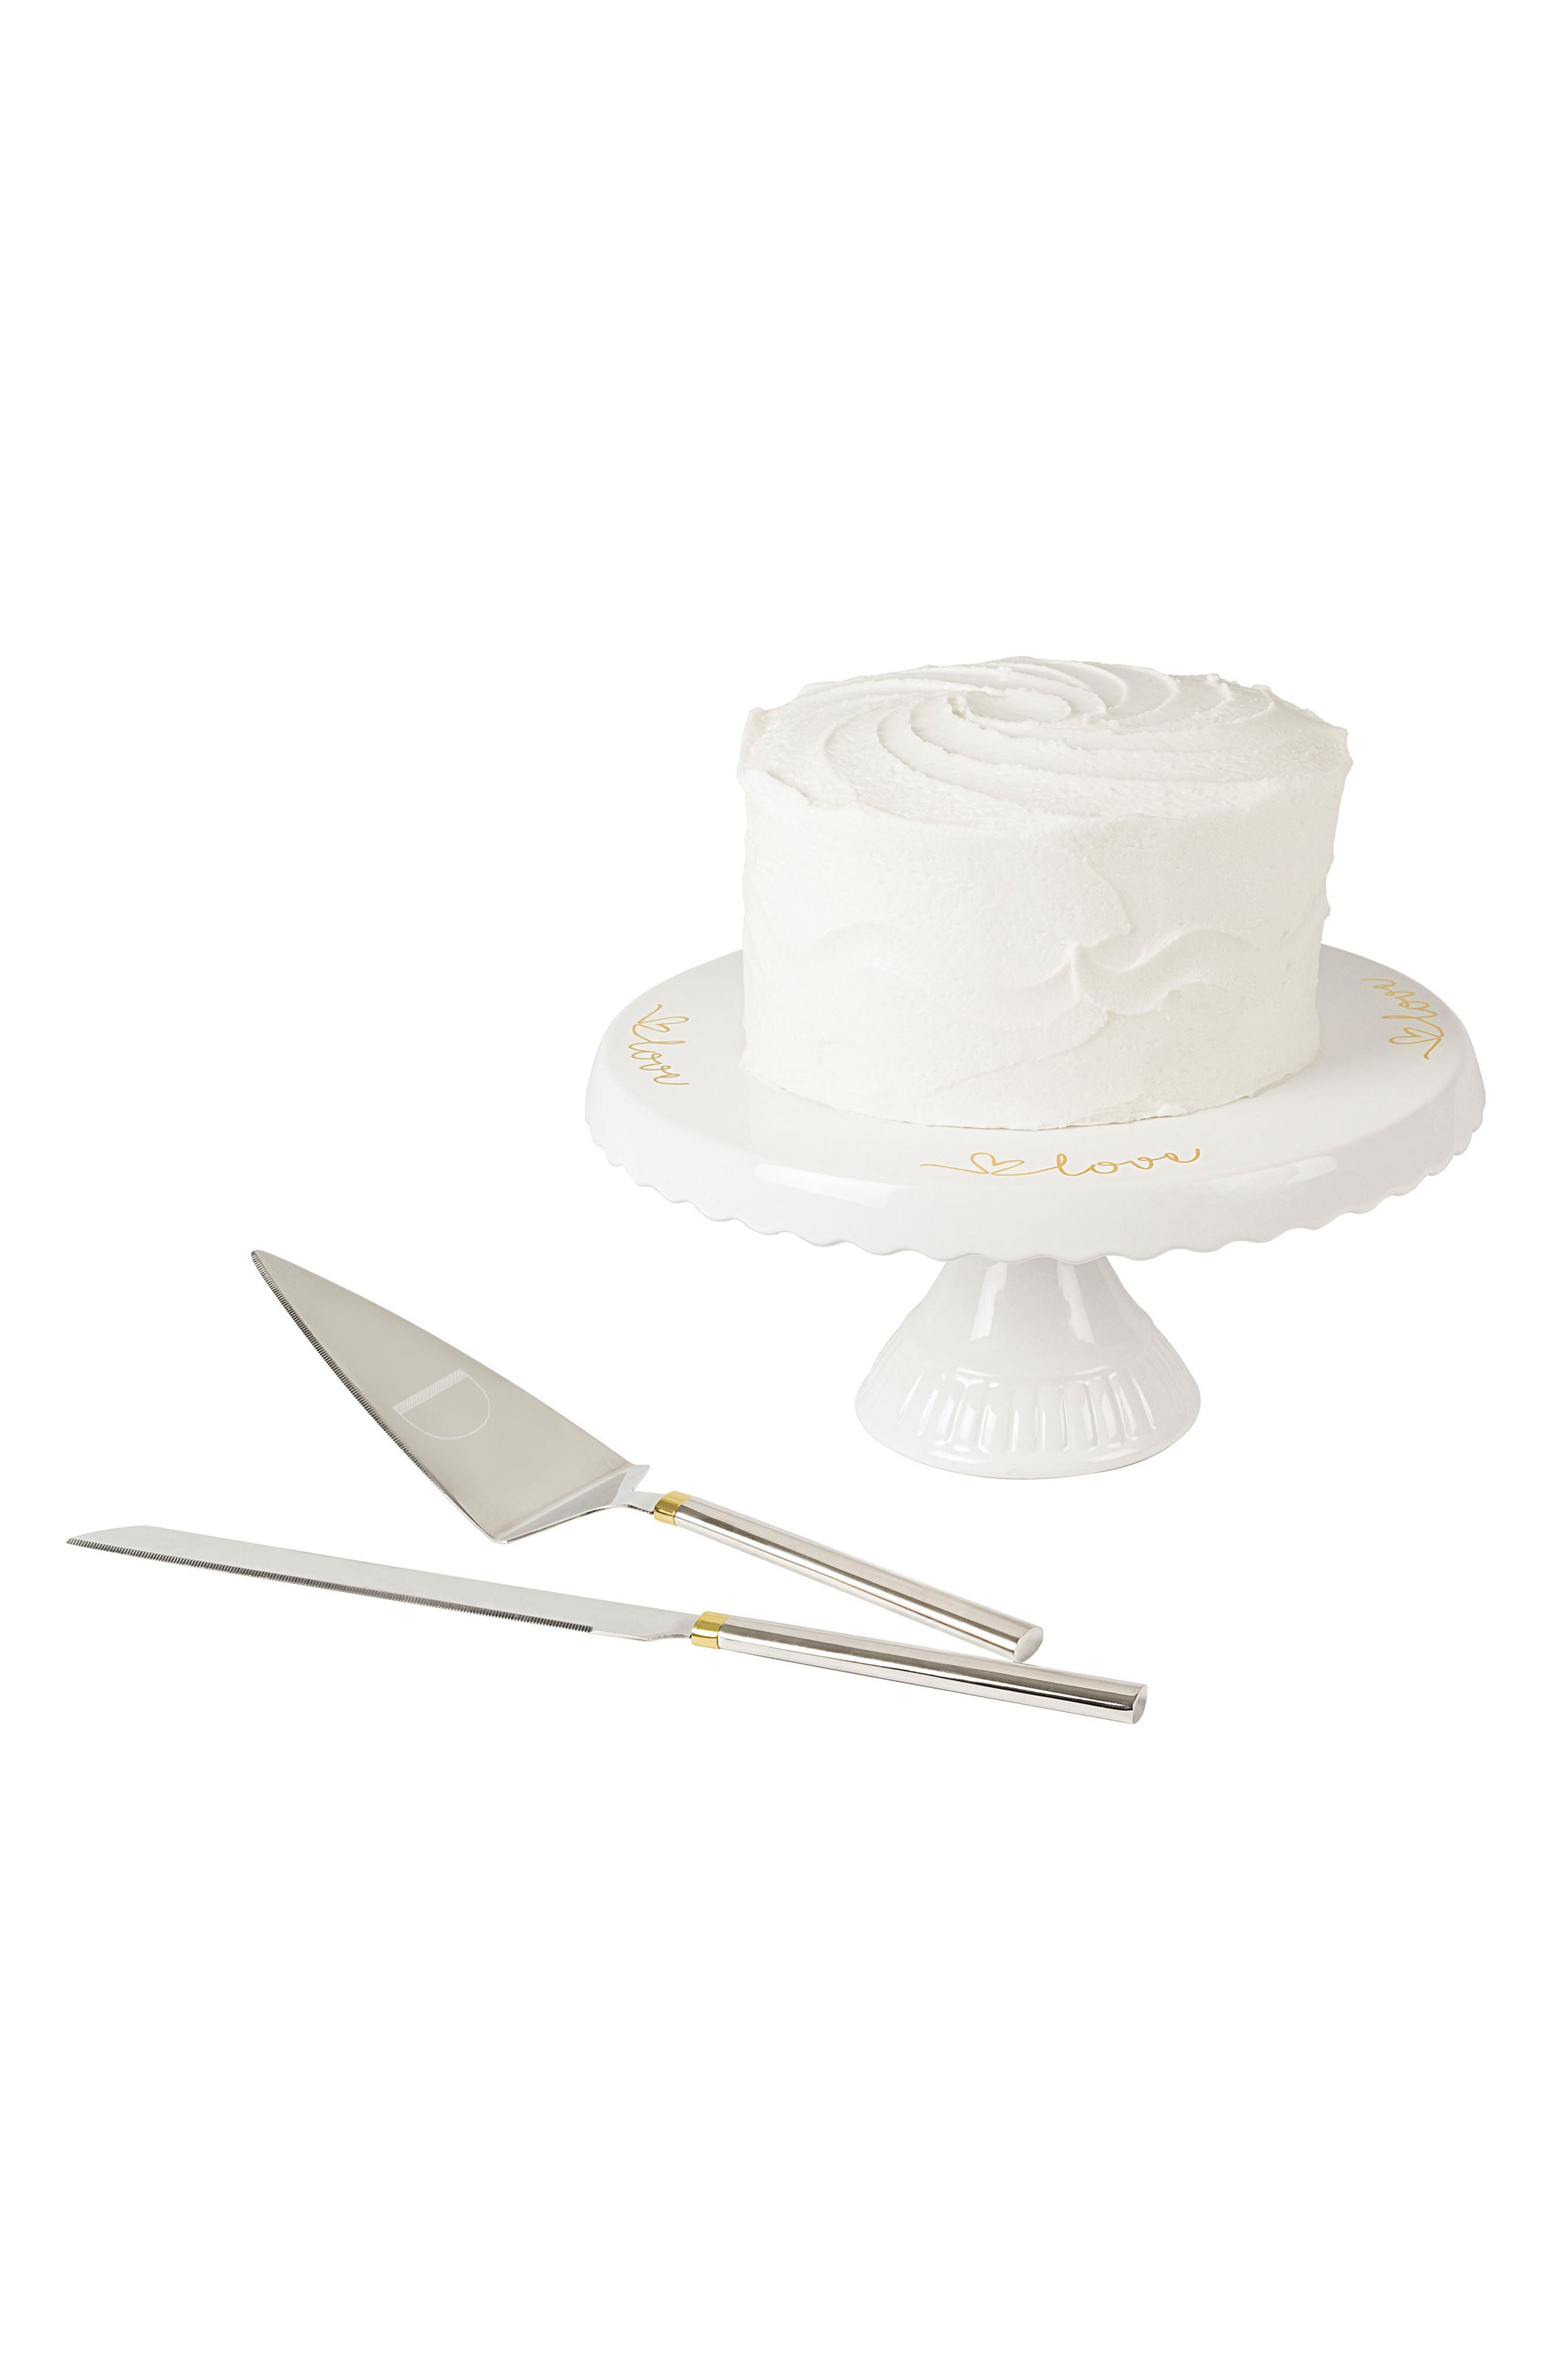 Love Monogram Cake Stand & Server Set,                             Main thumbnail 5, color,